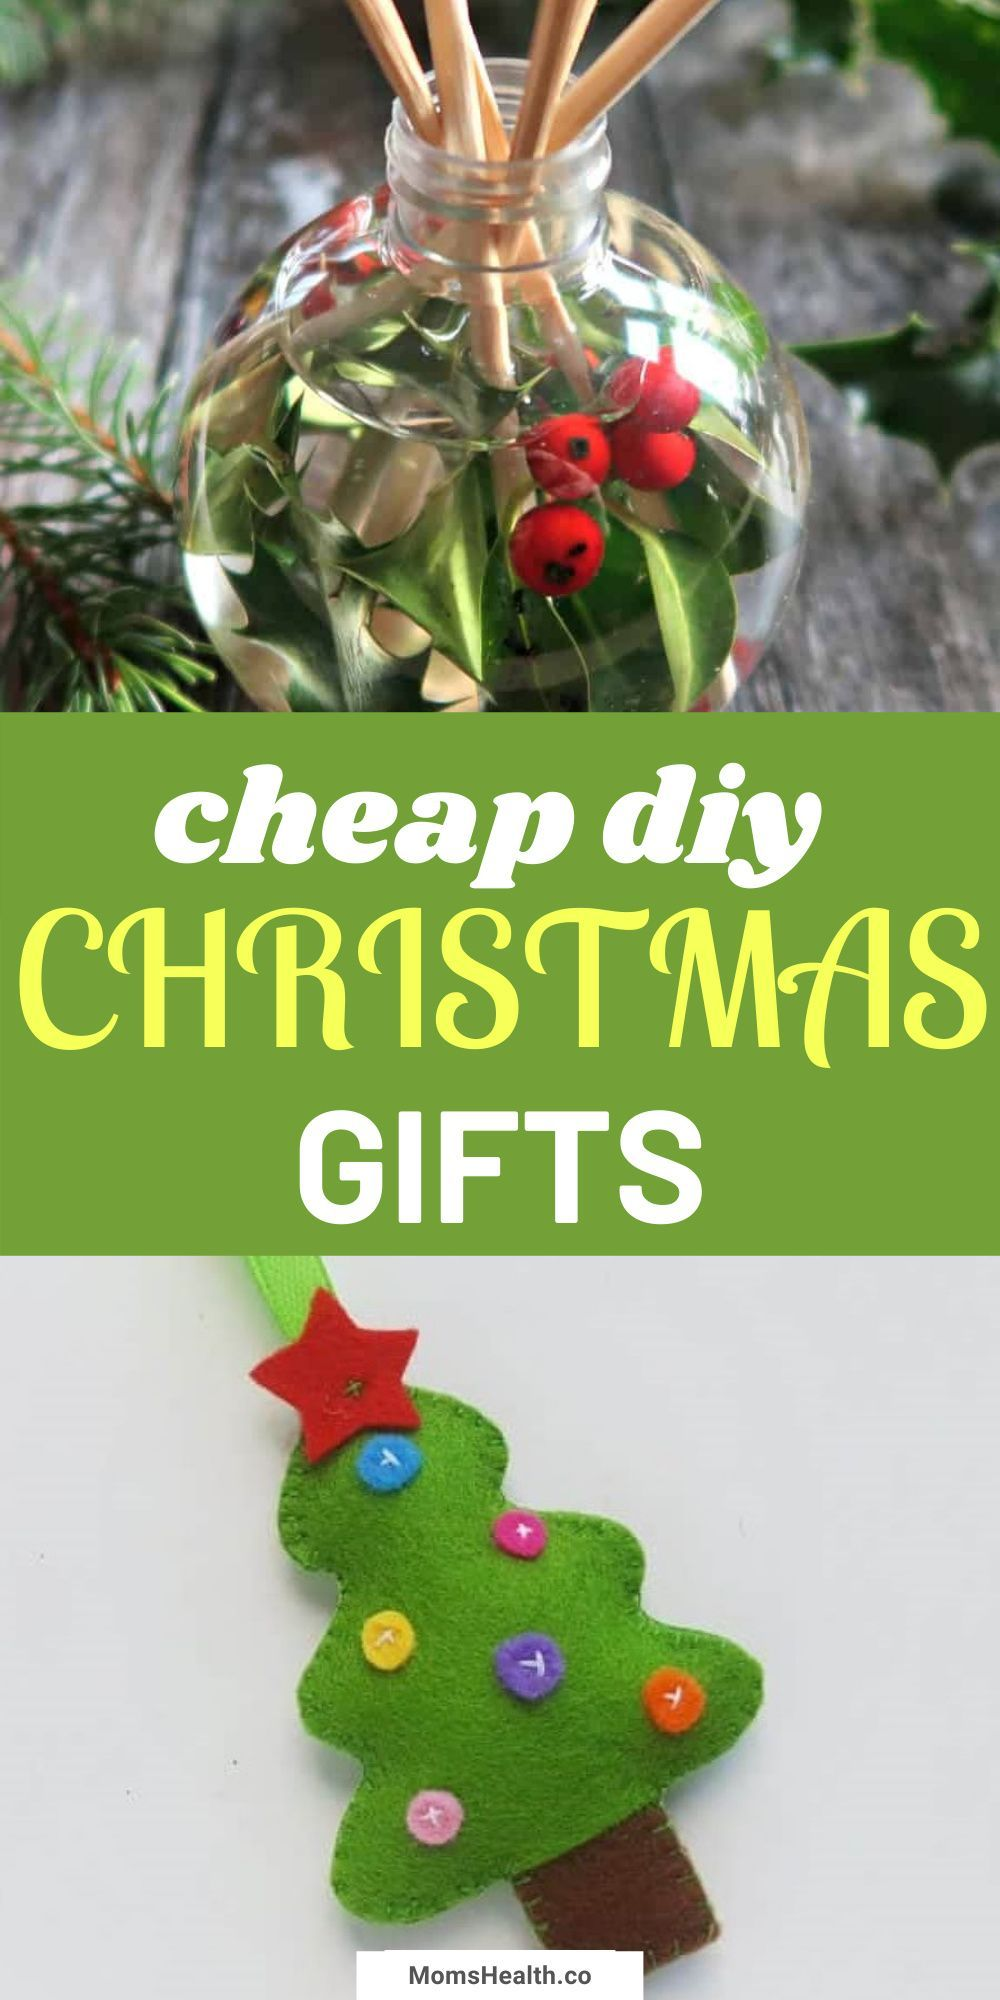 Cheap Diy Christmas Gift Ideas Creative Homemade Gifts For Everyone In 2020 Cheap Christmas Crafts Diy Christmas Gifts Cheap Christmas Diy